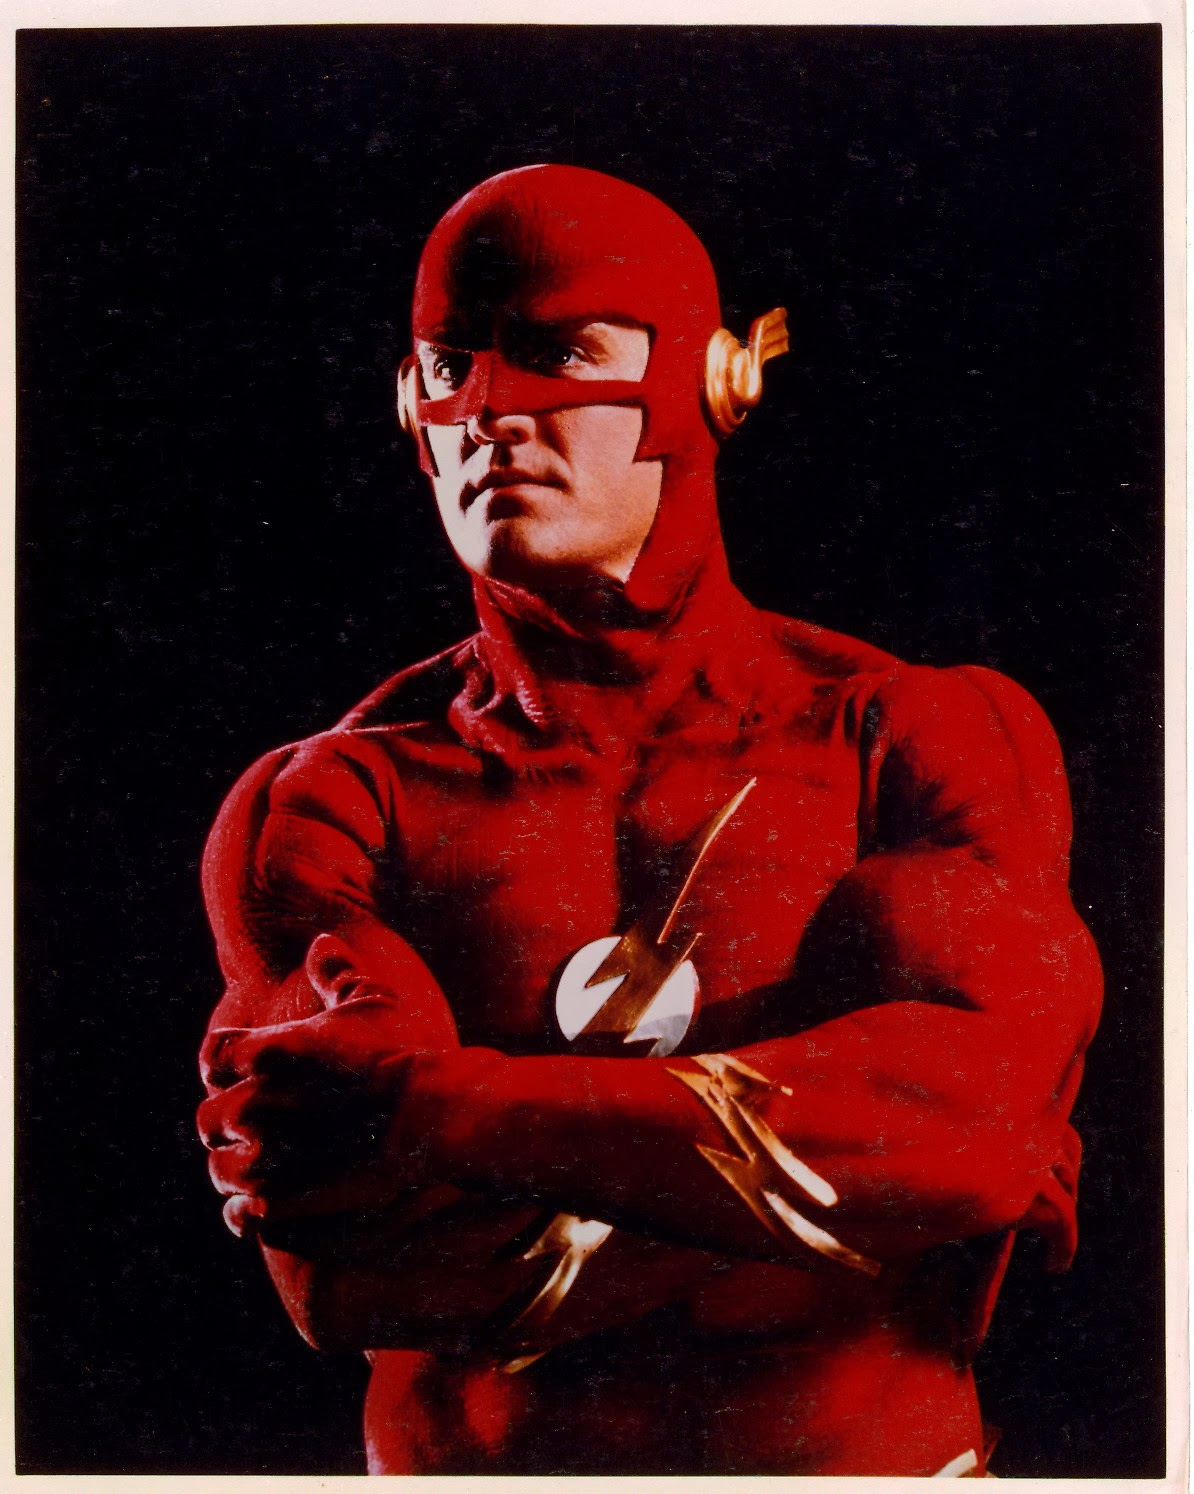 Wesley Flash Magic Monday Altars: The Flash - TV Series (1990)